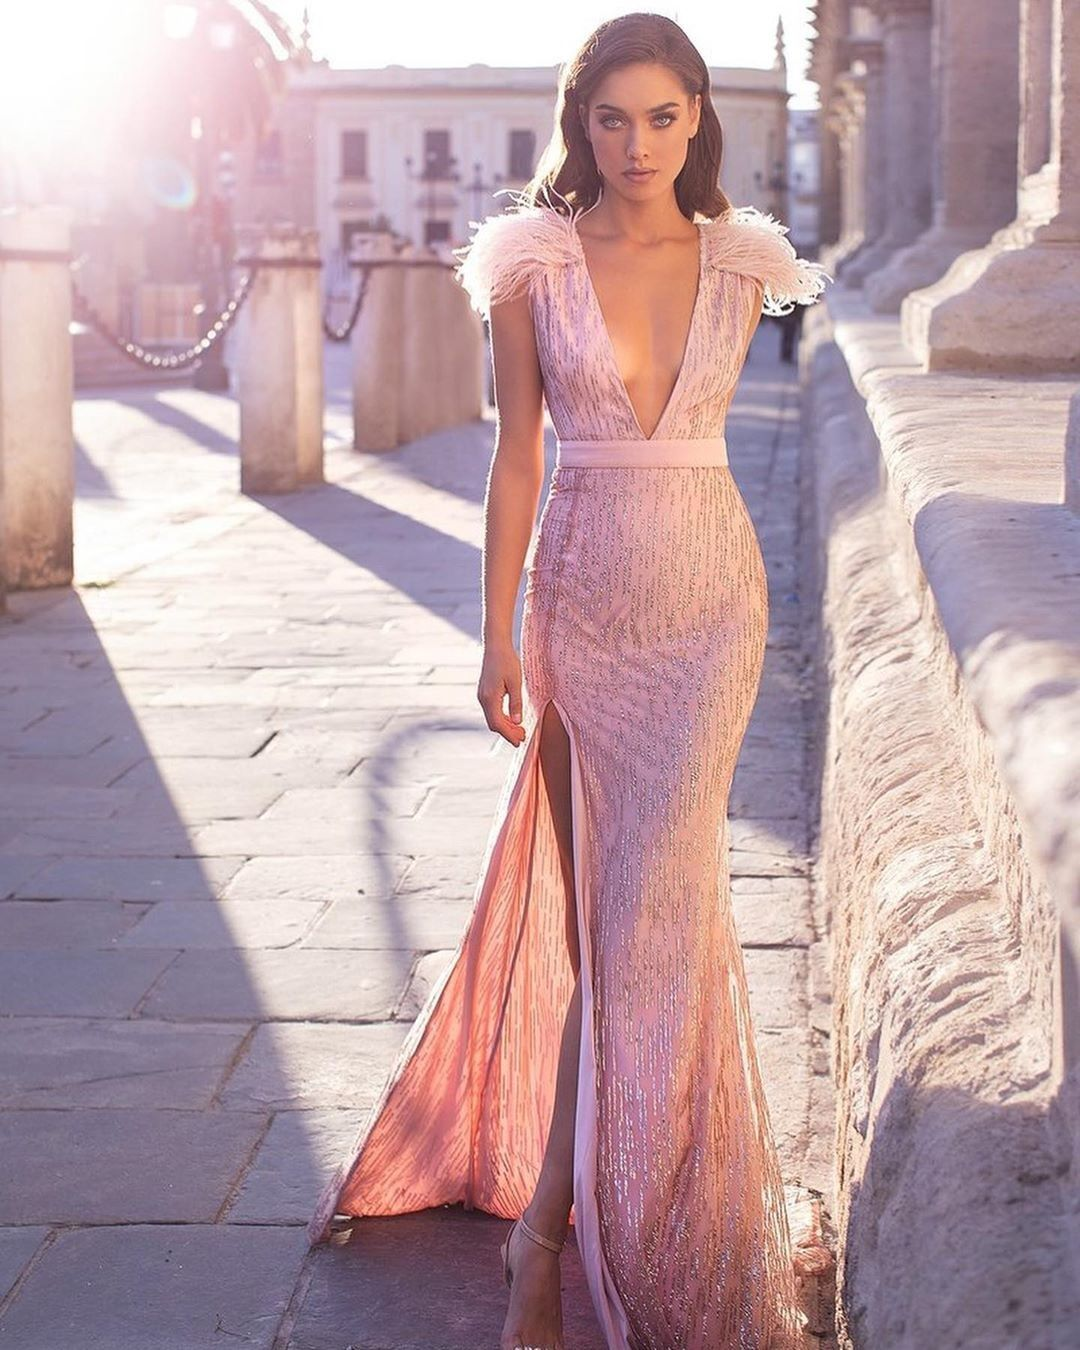 Pin by MH on Dress up | Fashion, Beautiful dresses, Dresses